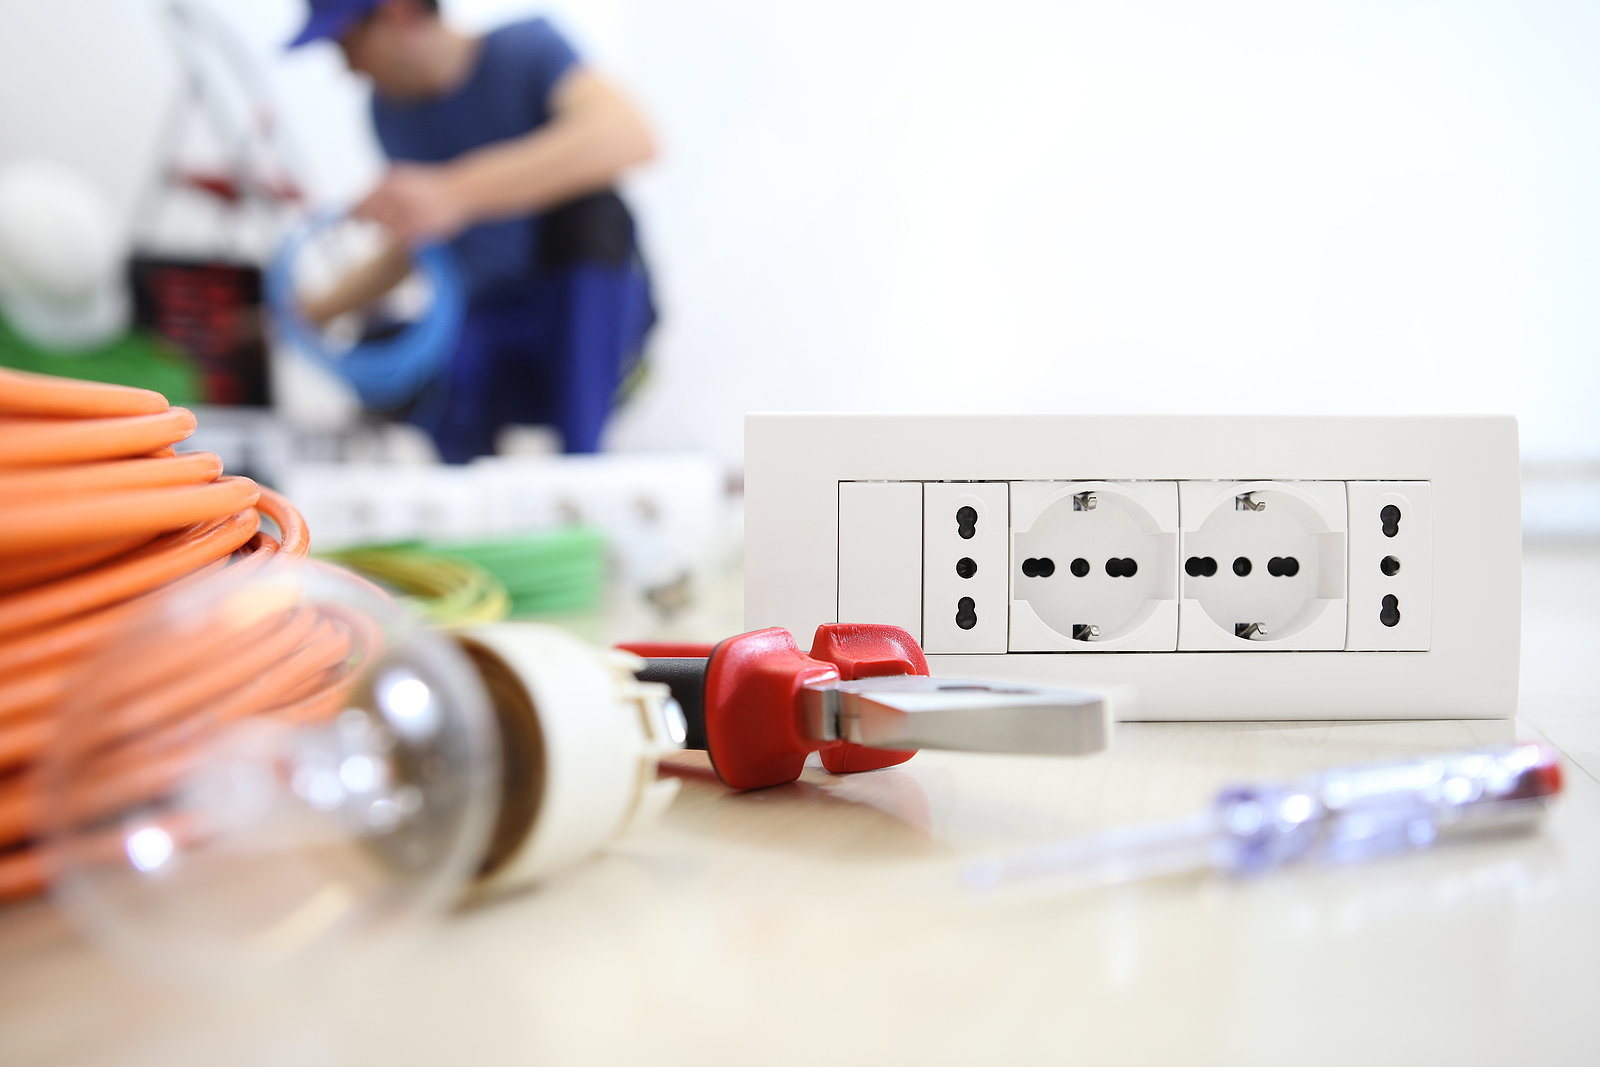 Electrician Work With Electrical Equipment